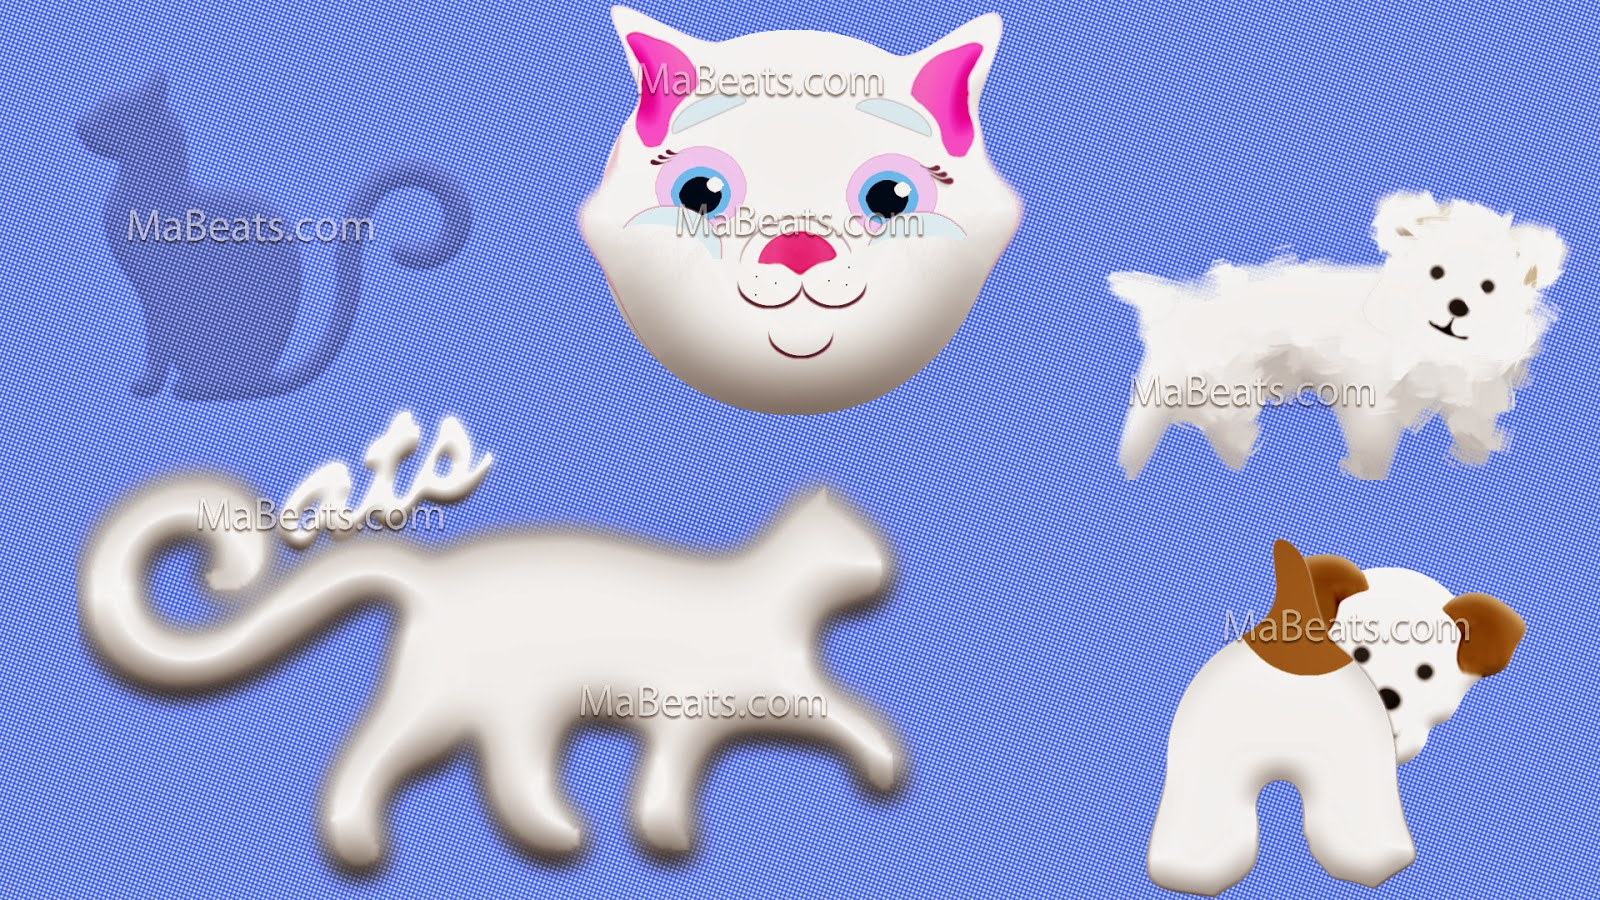 Cats wins the dogs, cat vector, white cat, white furry dog